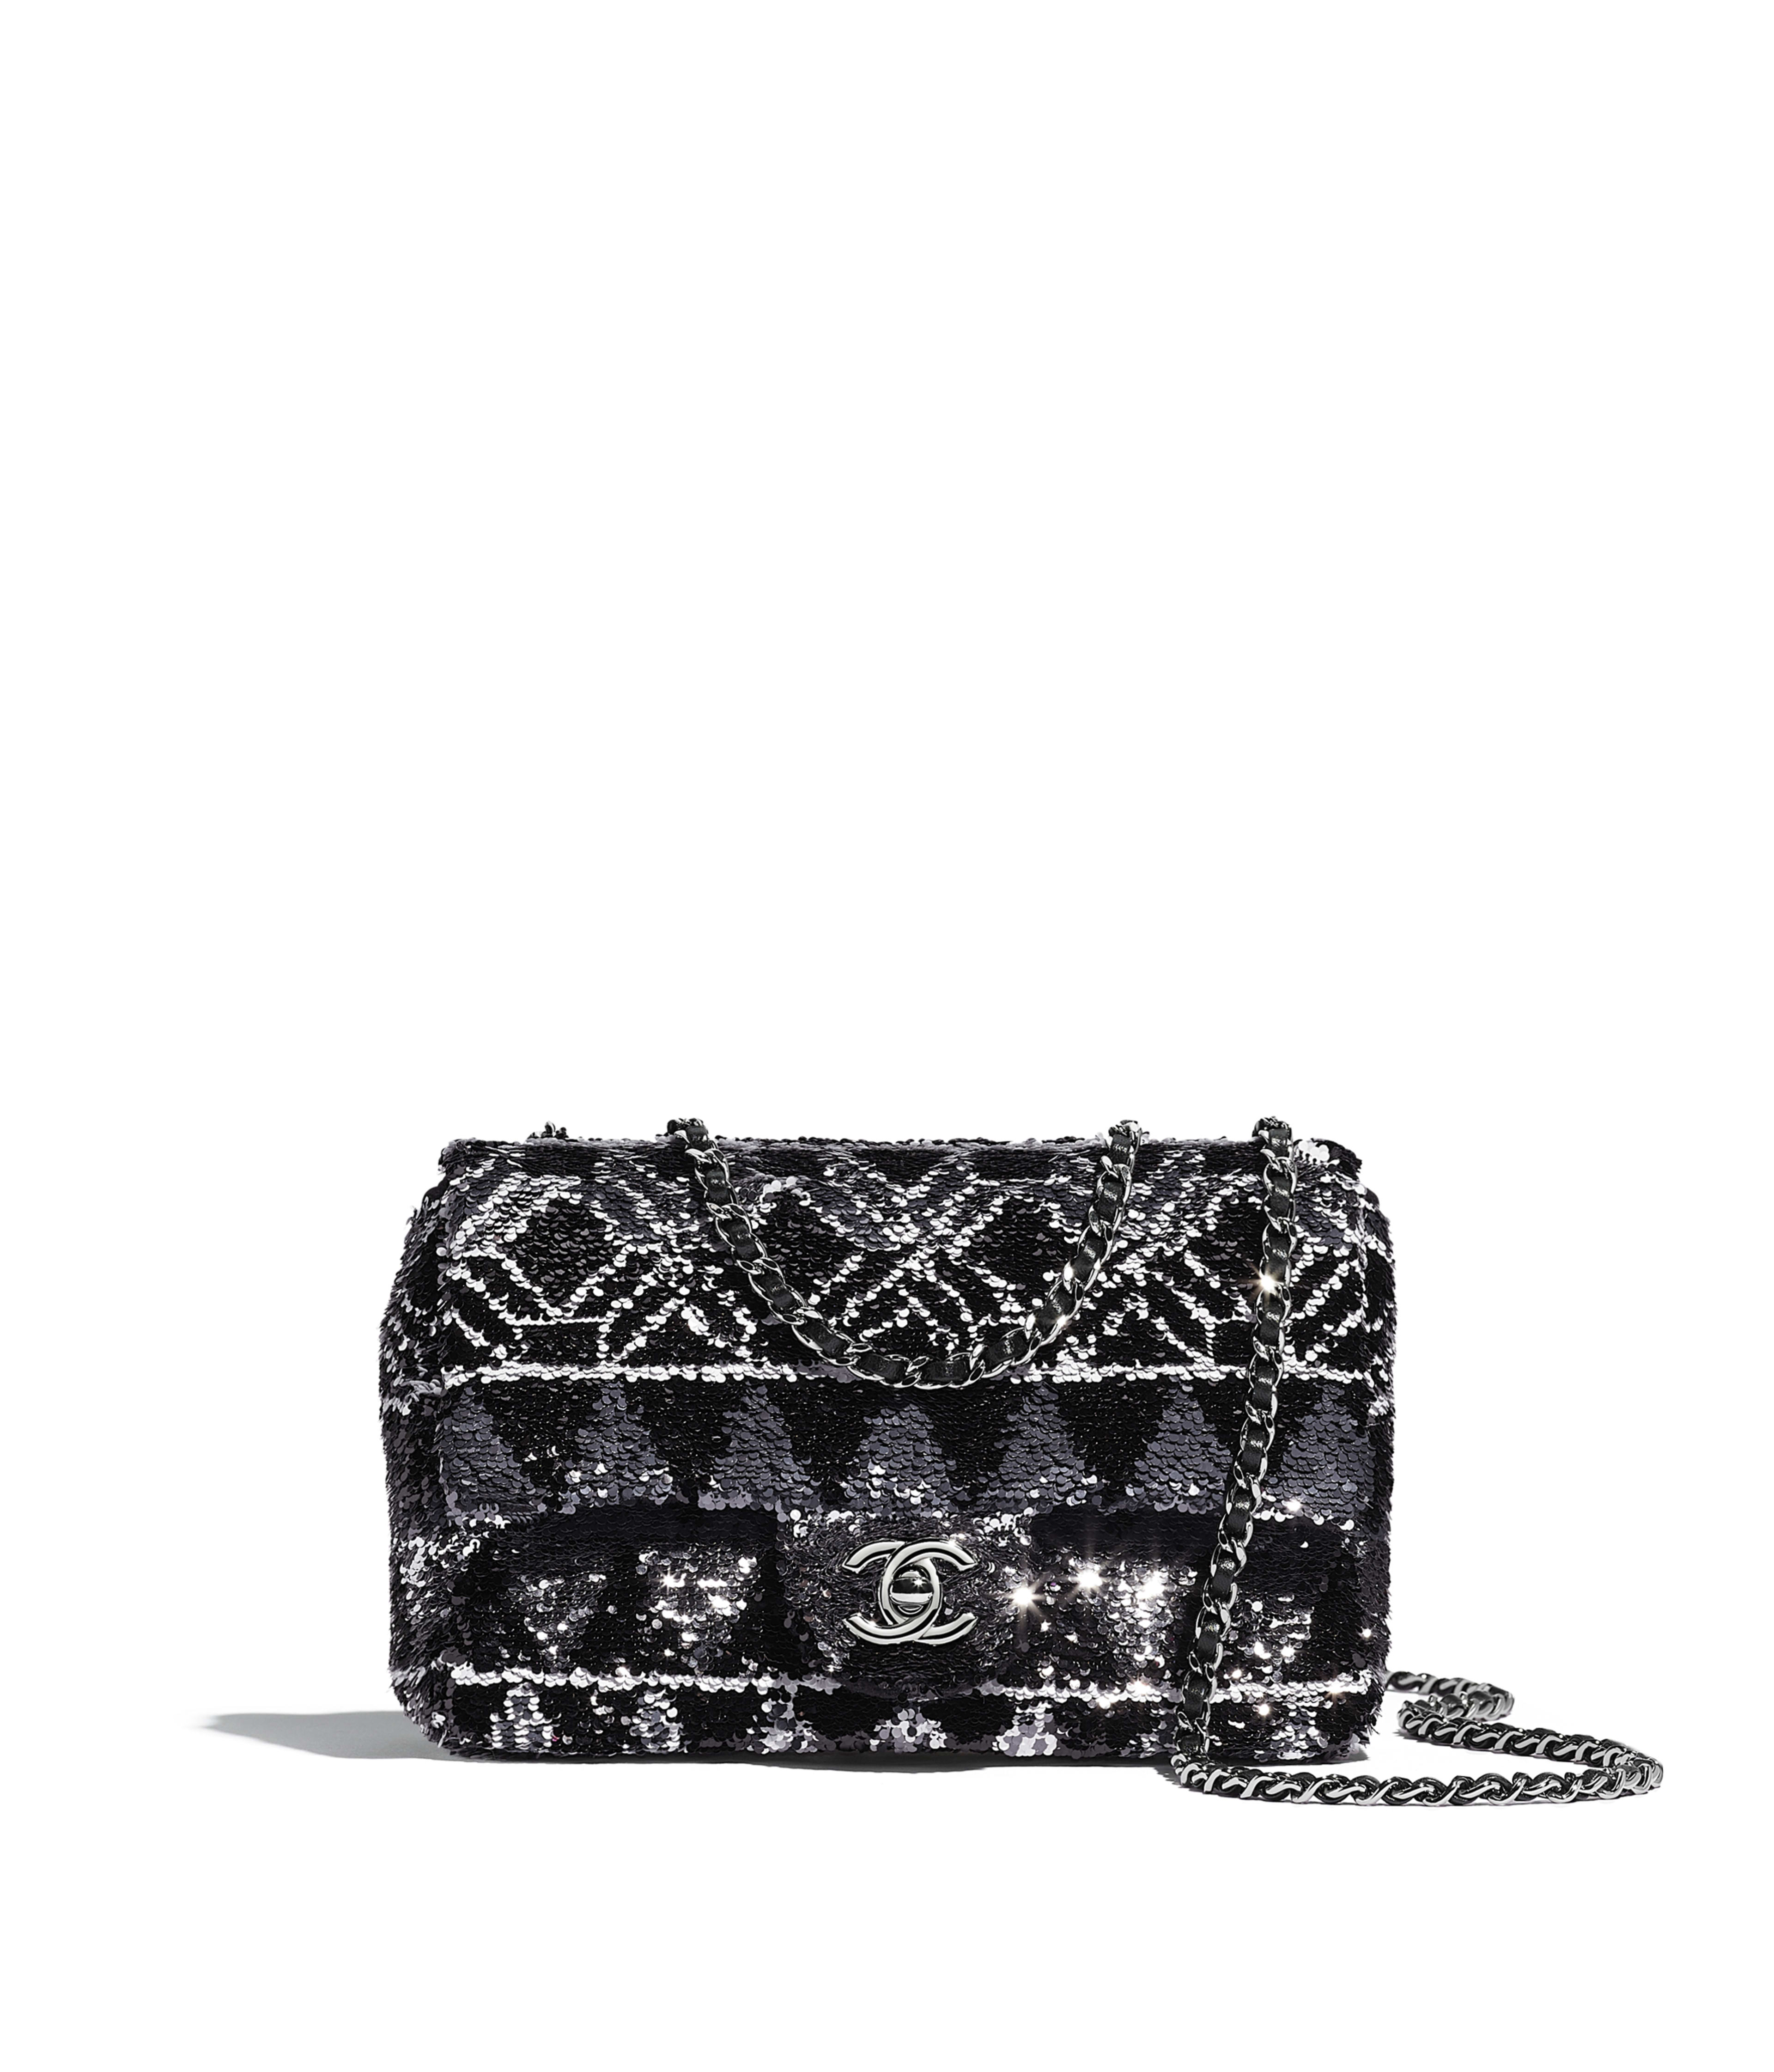 offer discounts diverse styles competitive price Handbags - Fashion | CHANEL